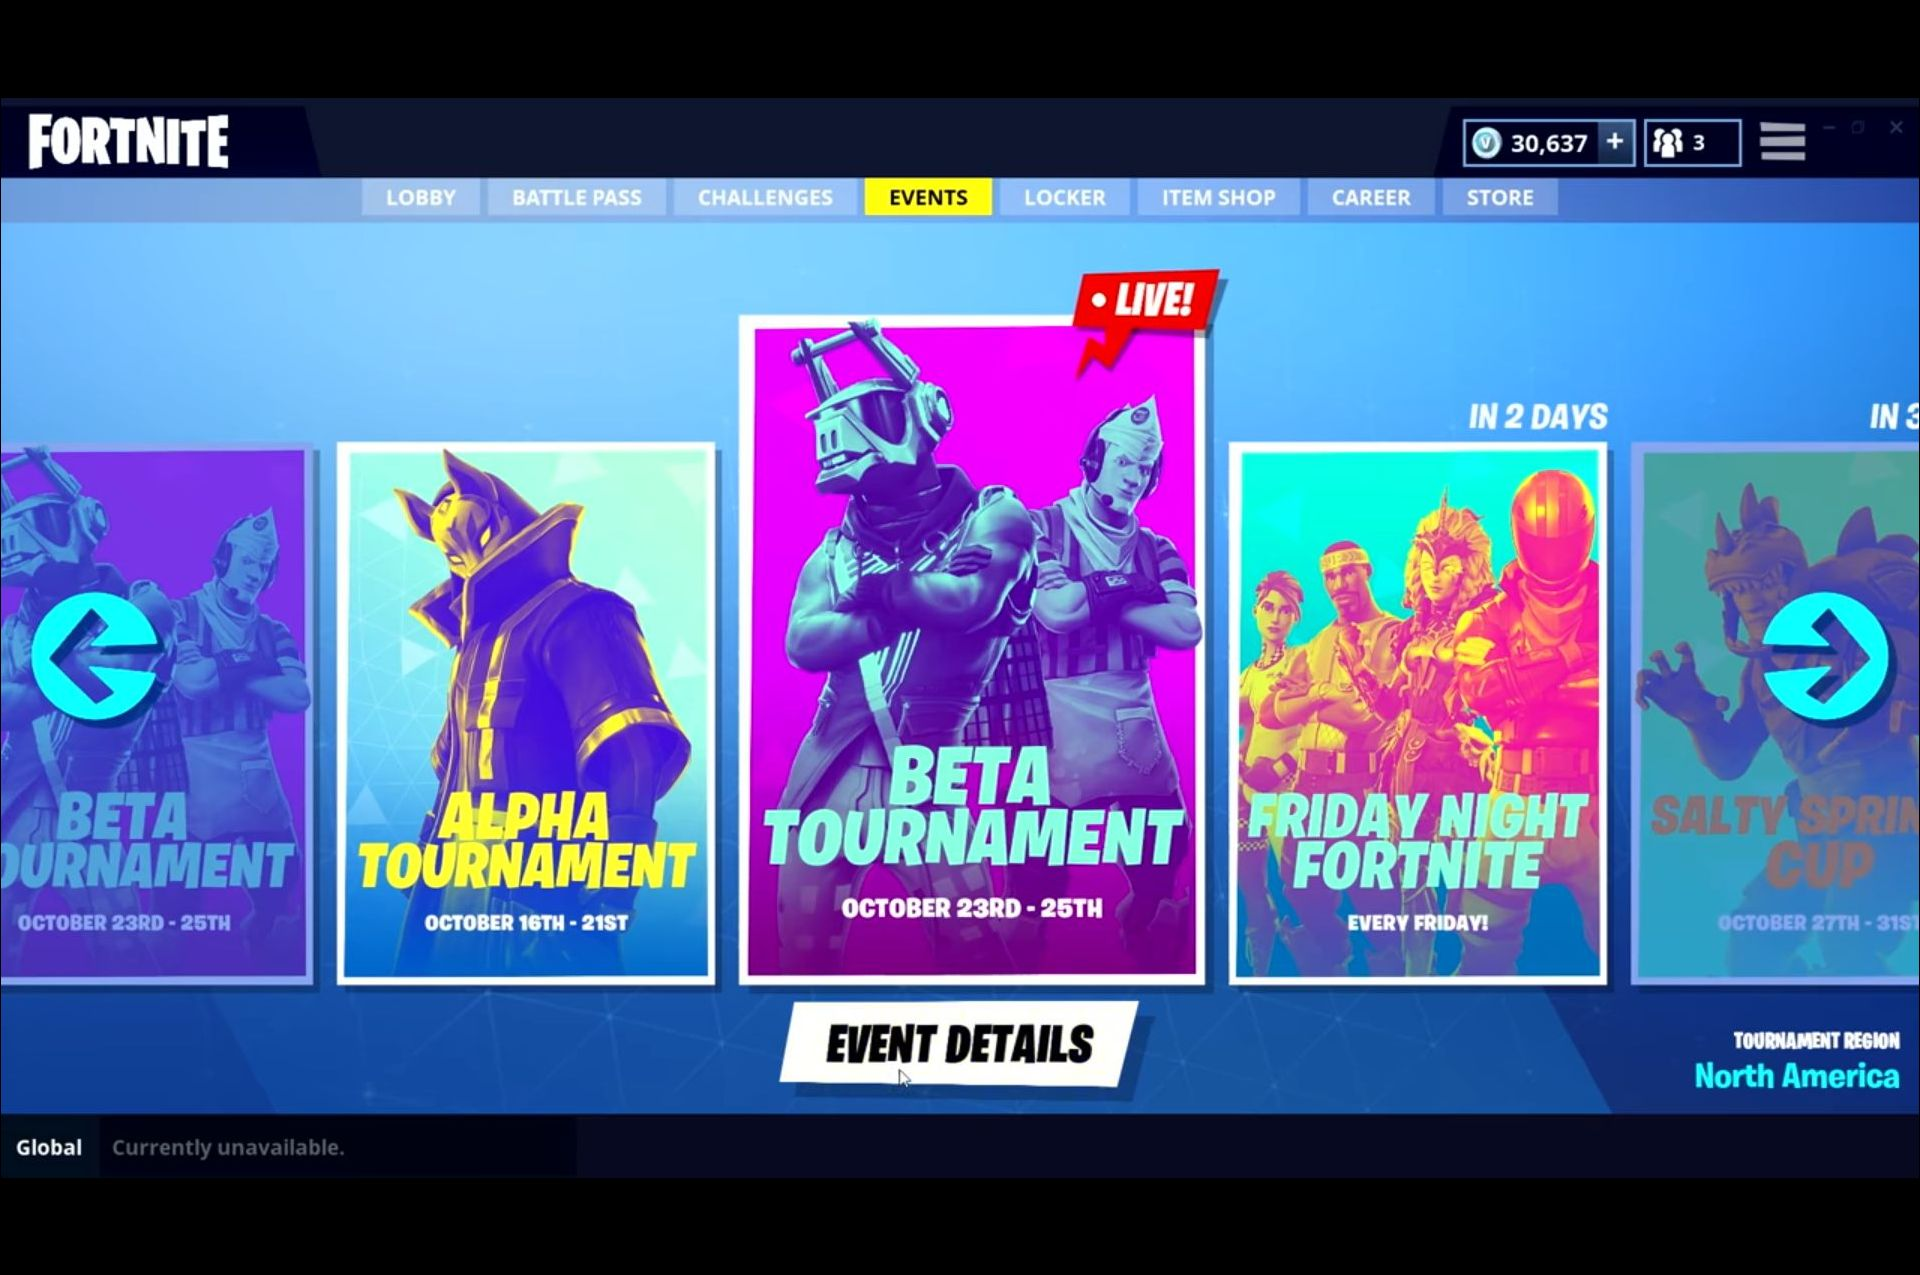 Fortnite Adds In Game Tournaments The Star Online